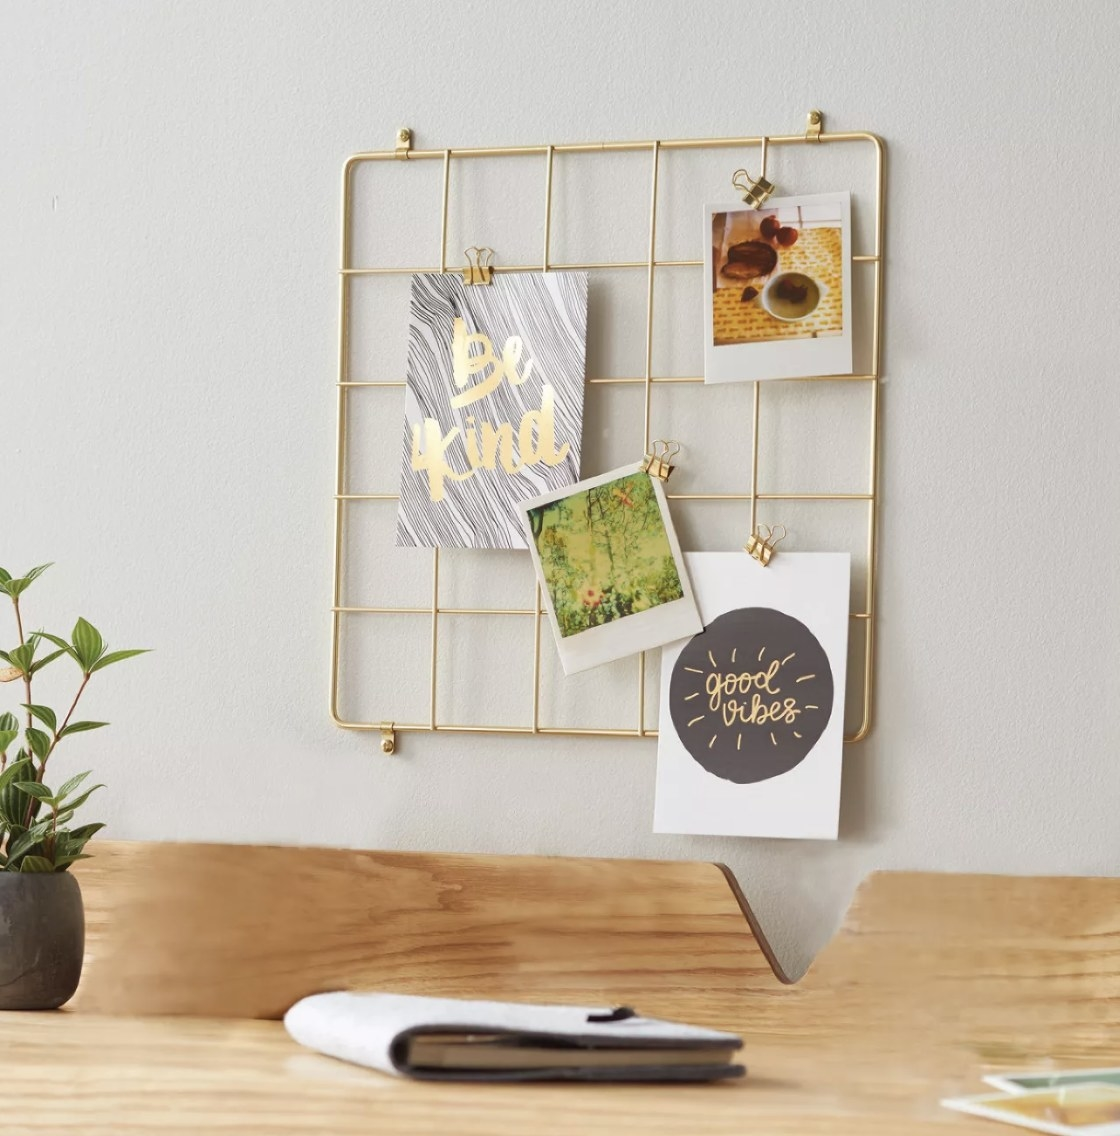 Gold grid wall organizer with clips hung above desk space